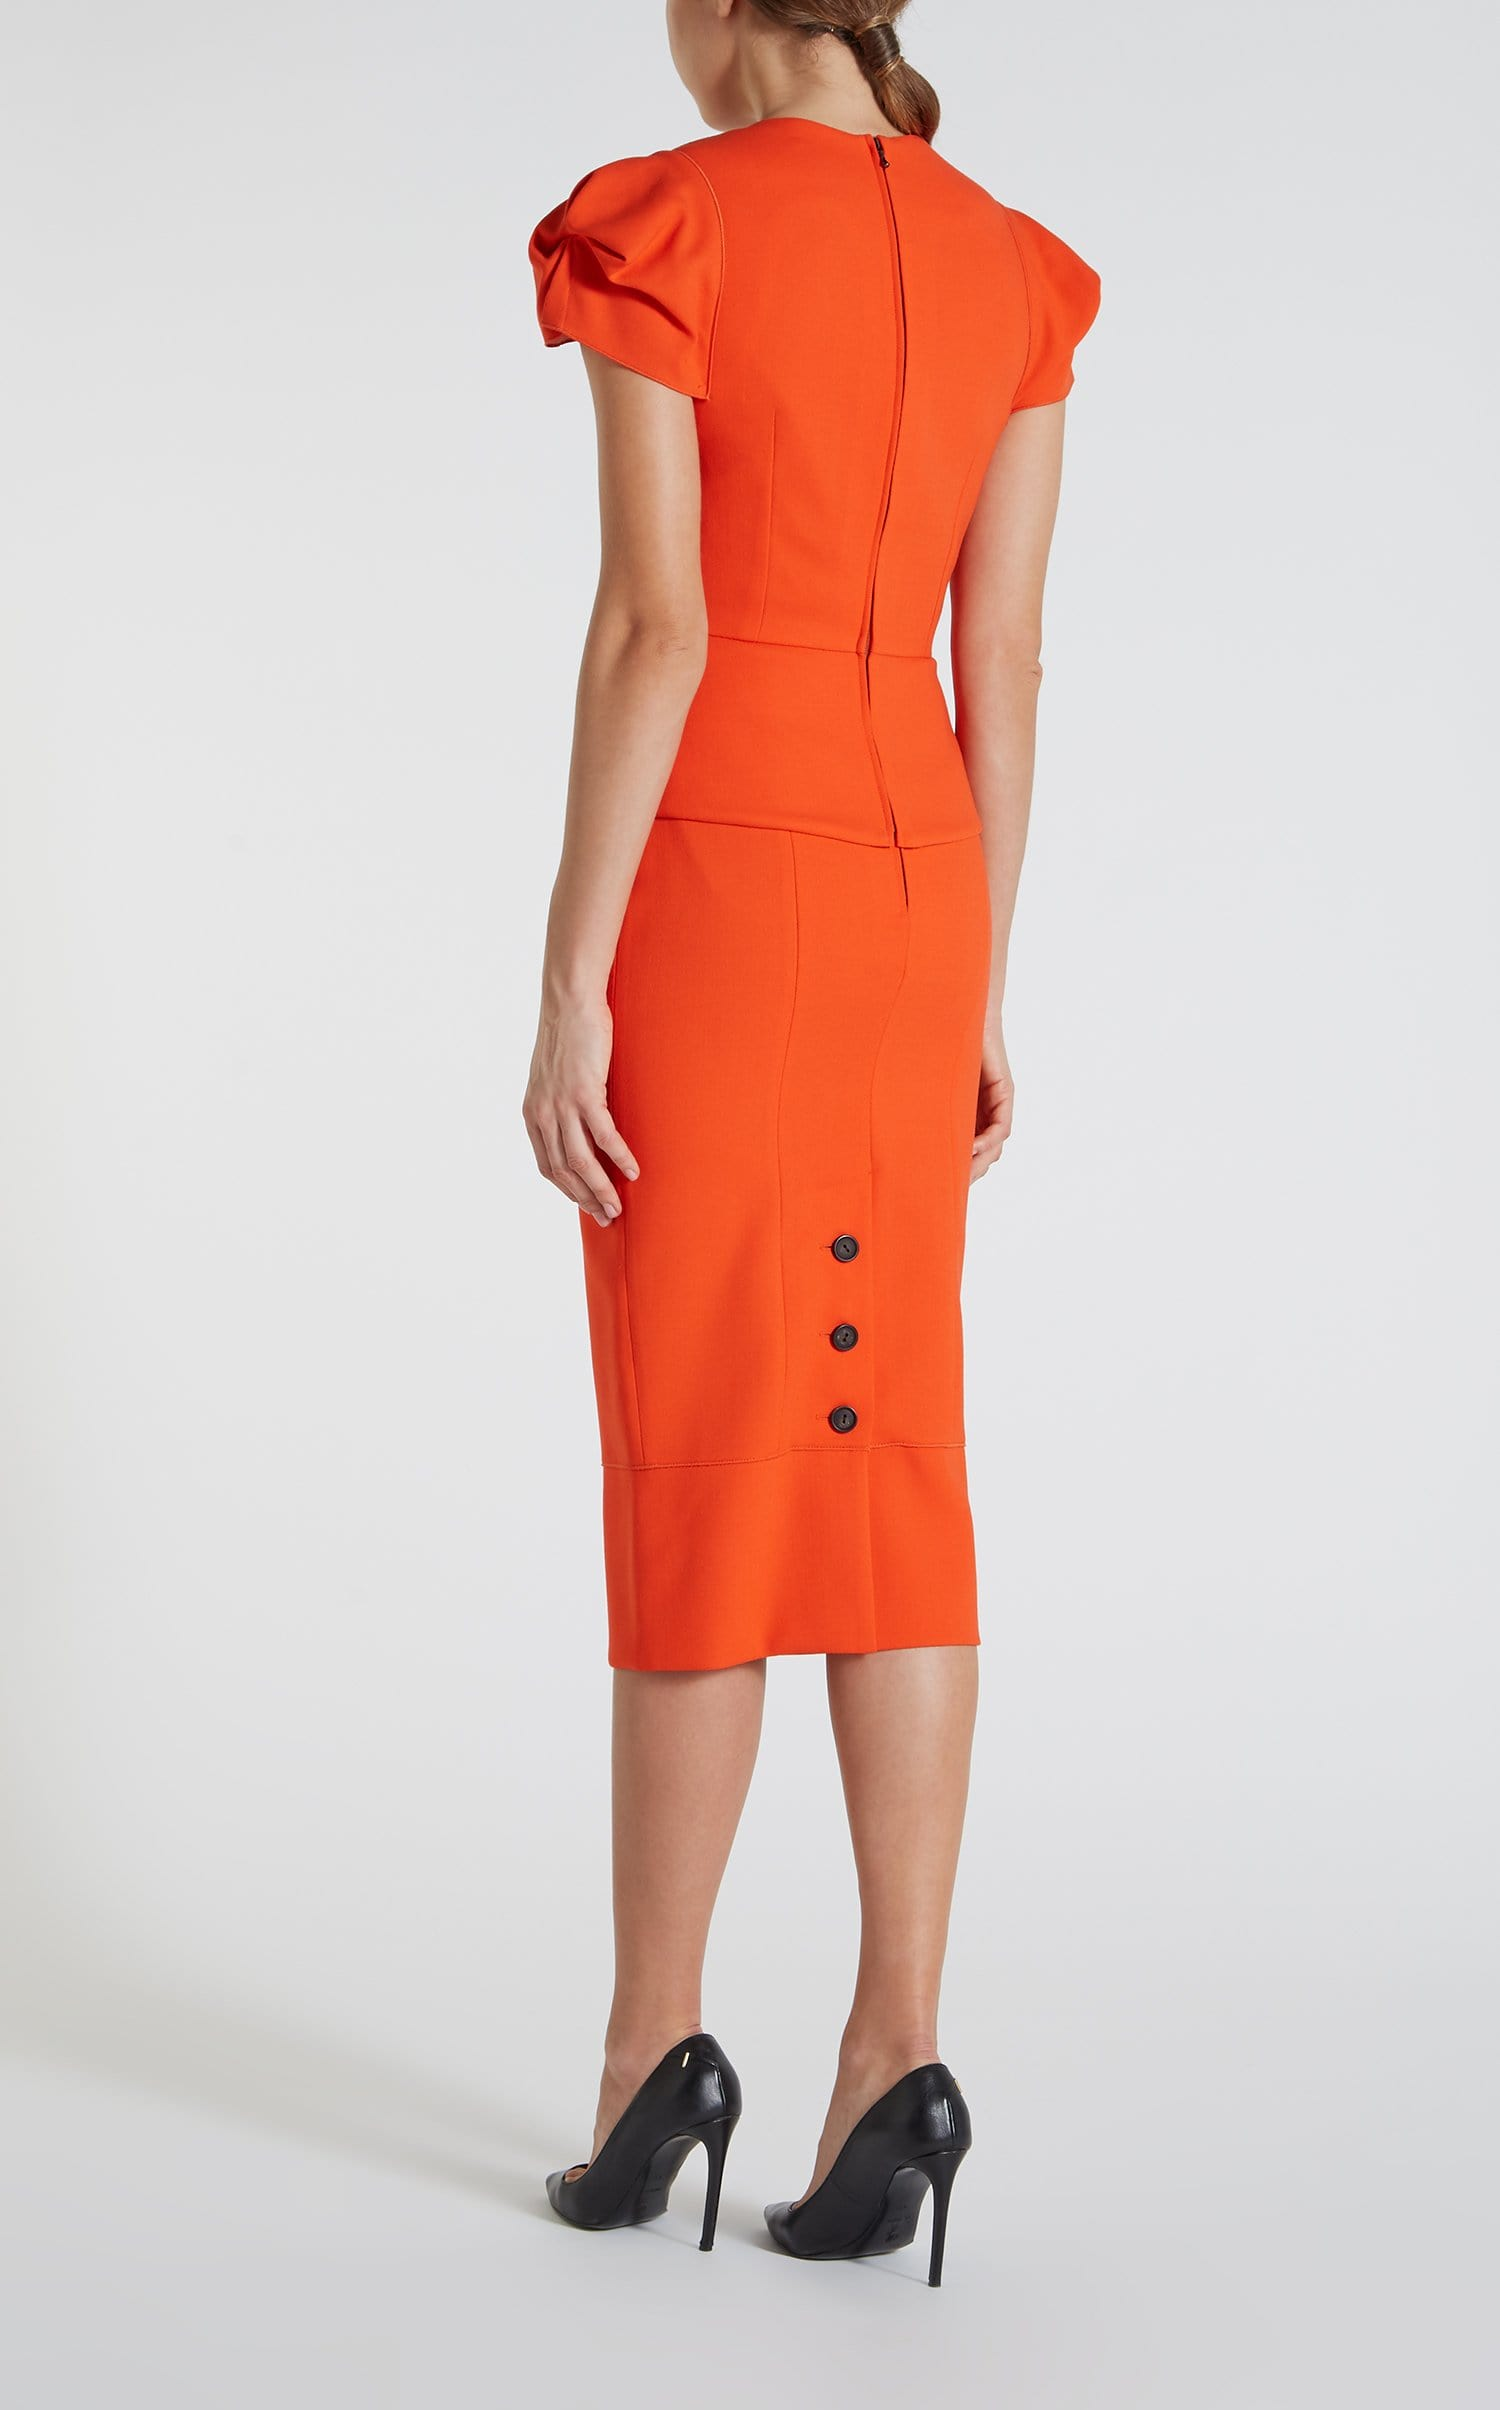 Galaxy Top In Bright Orange from Roland Mouret